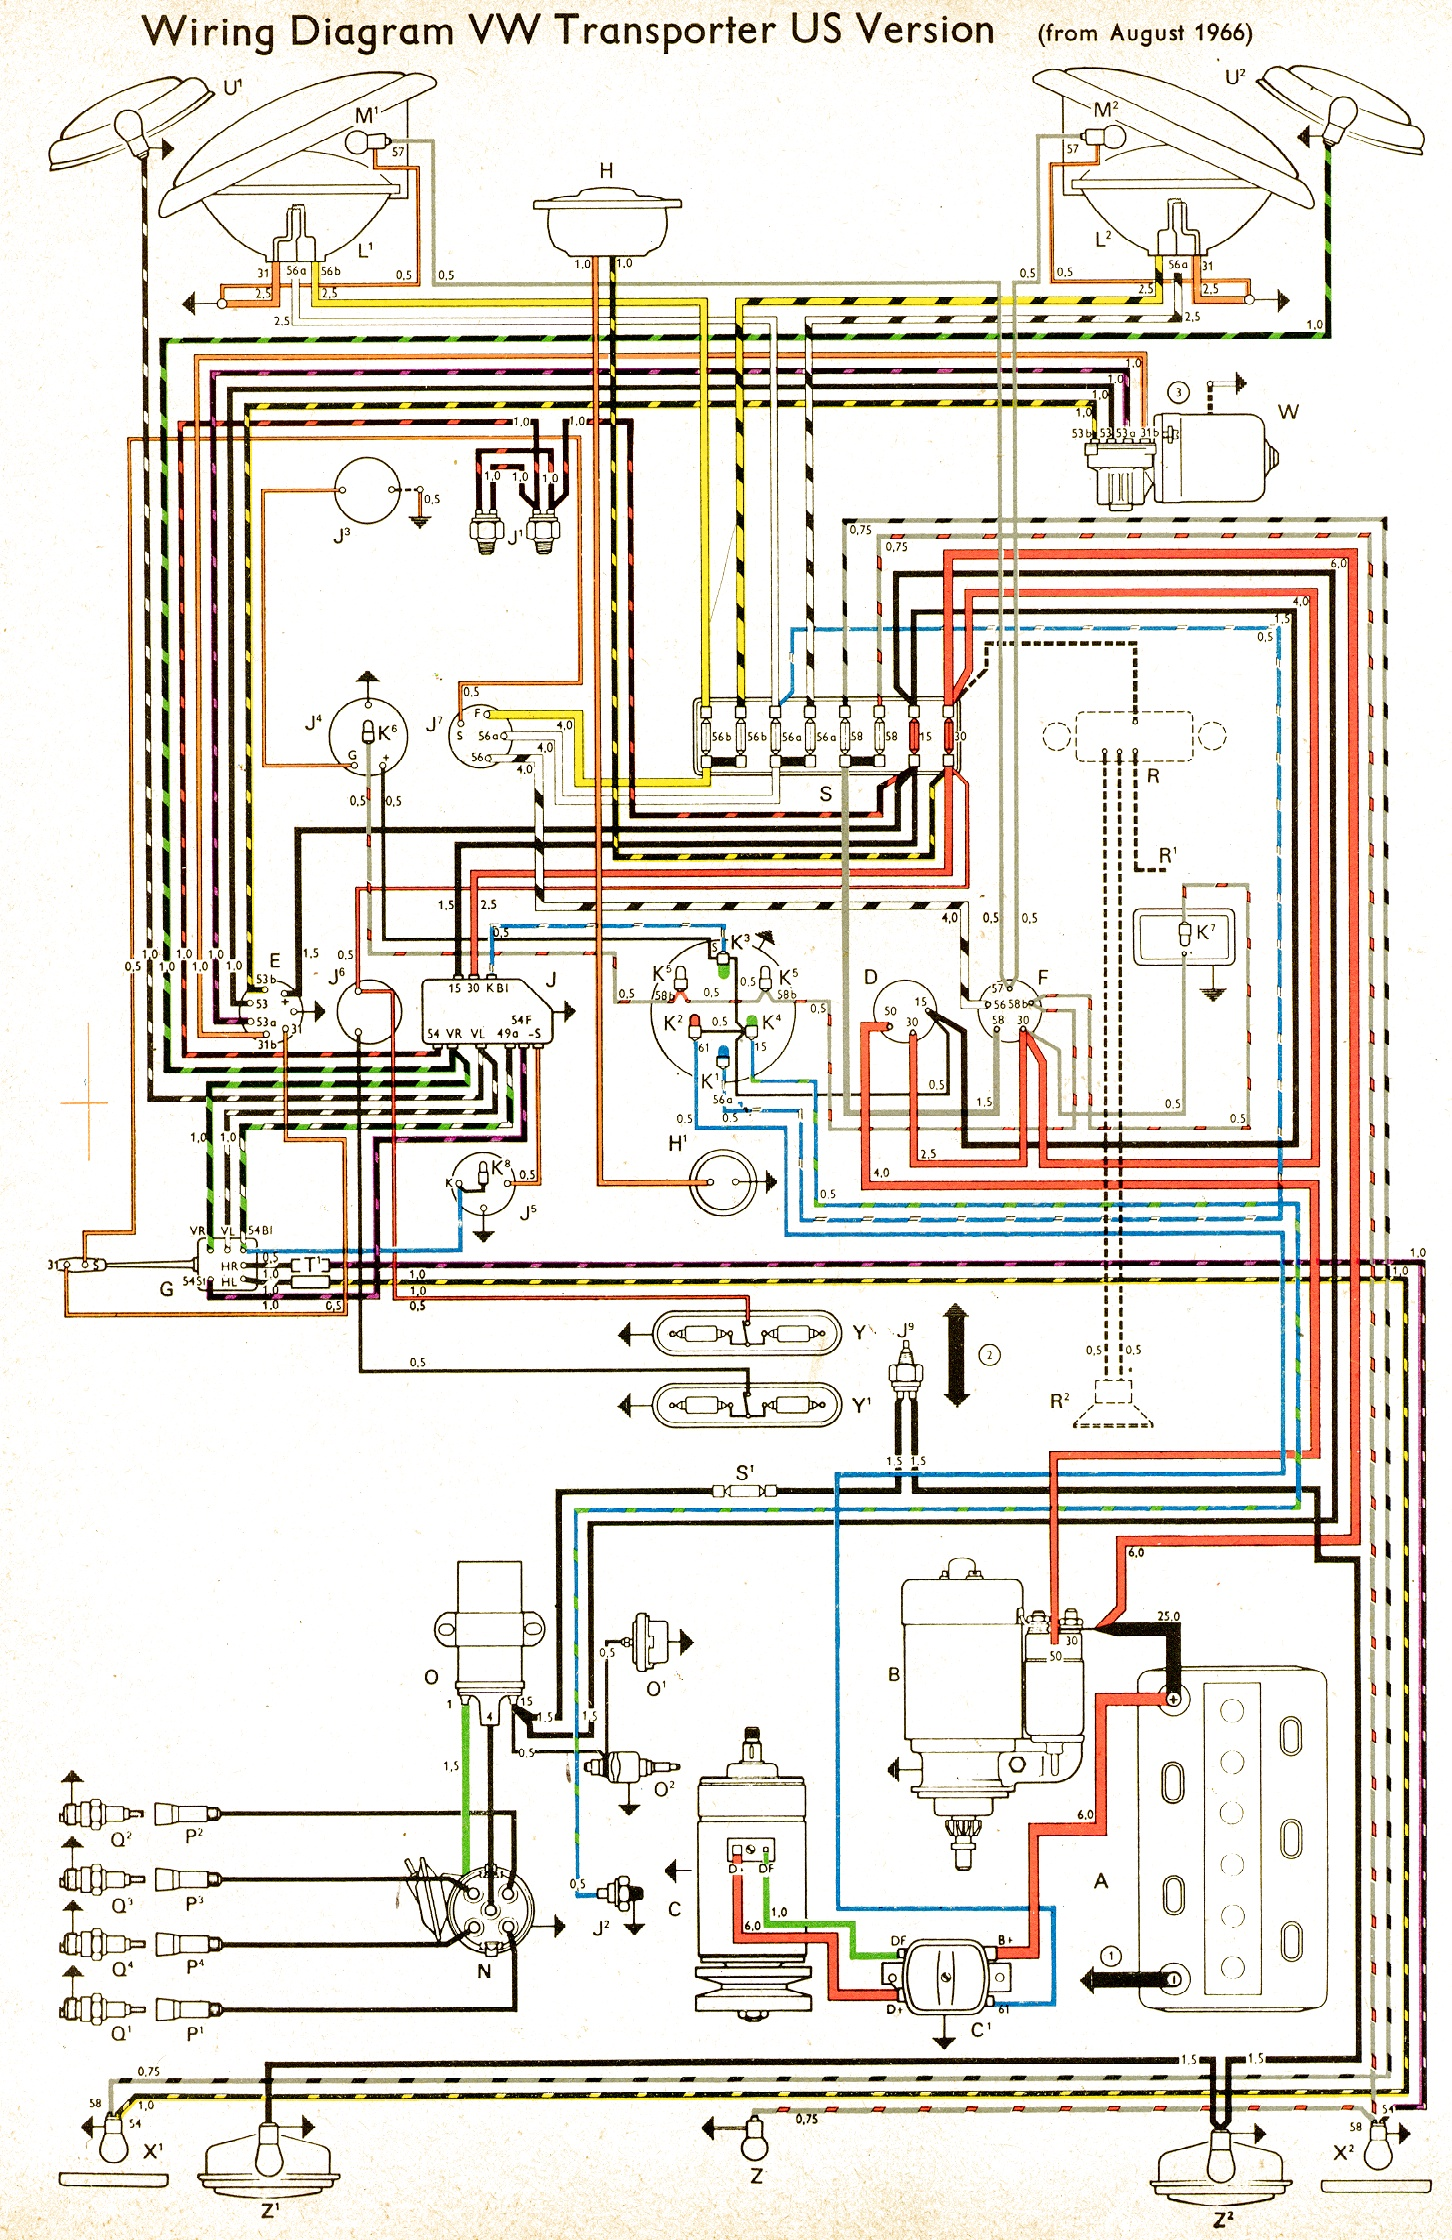 30F8A5 67 Vw Wiring Harness Free Download Diagram Schematic | Wiring LibraryWiring Library